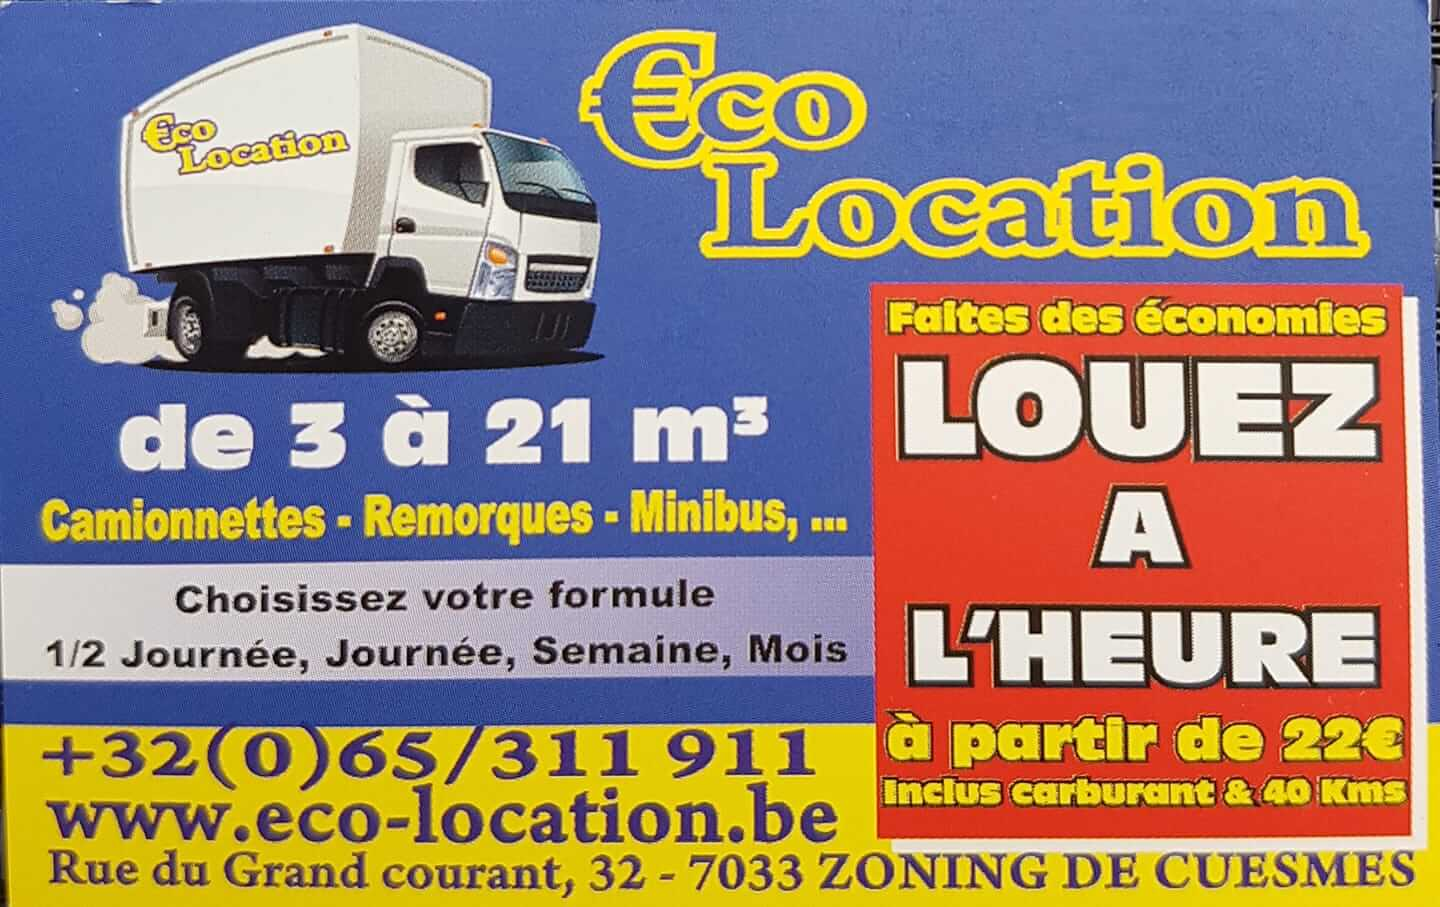 Eco-Location